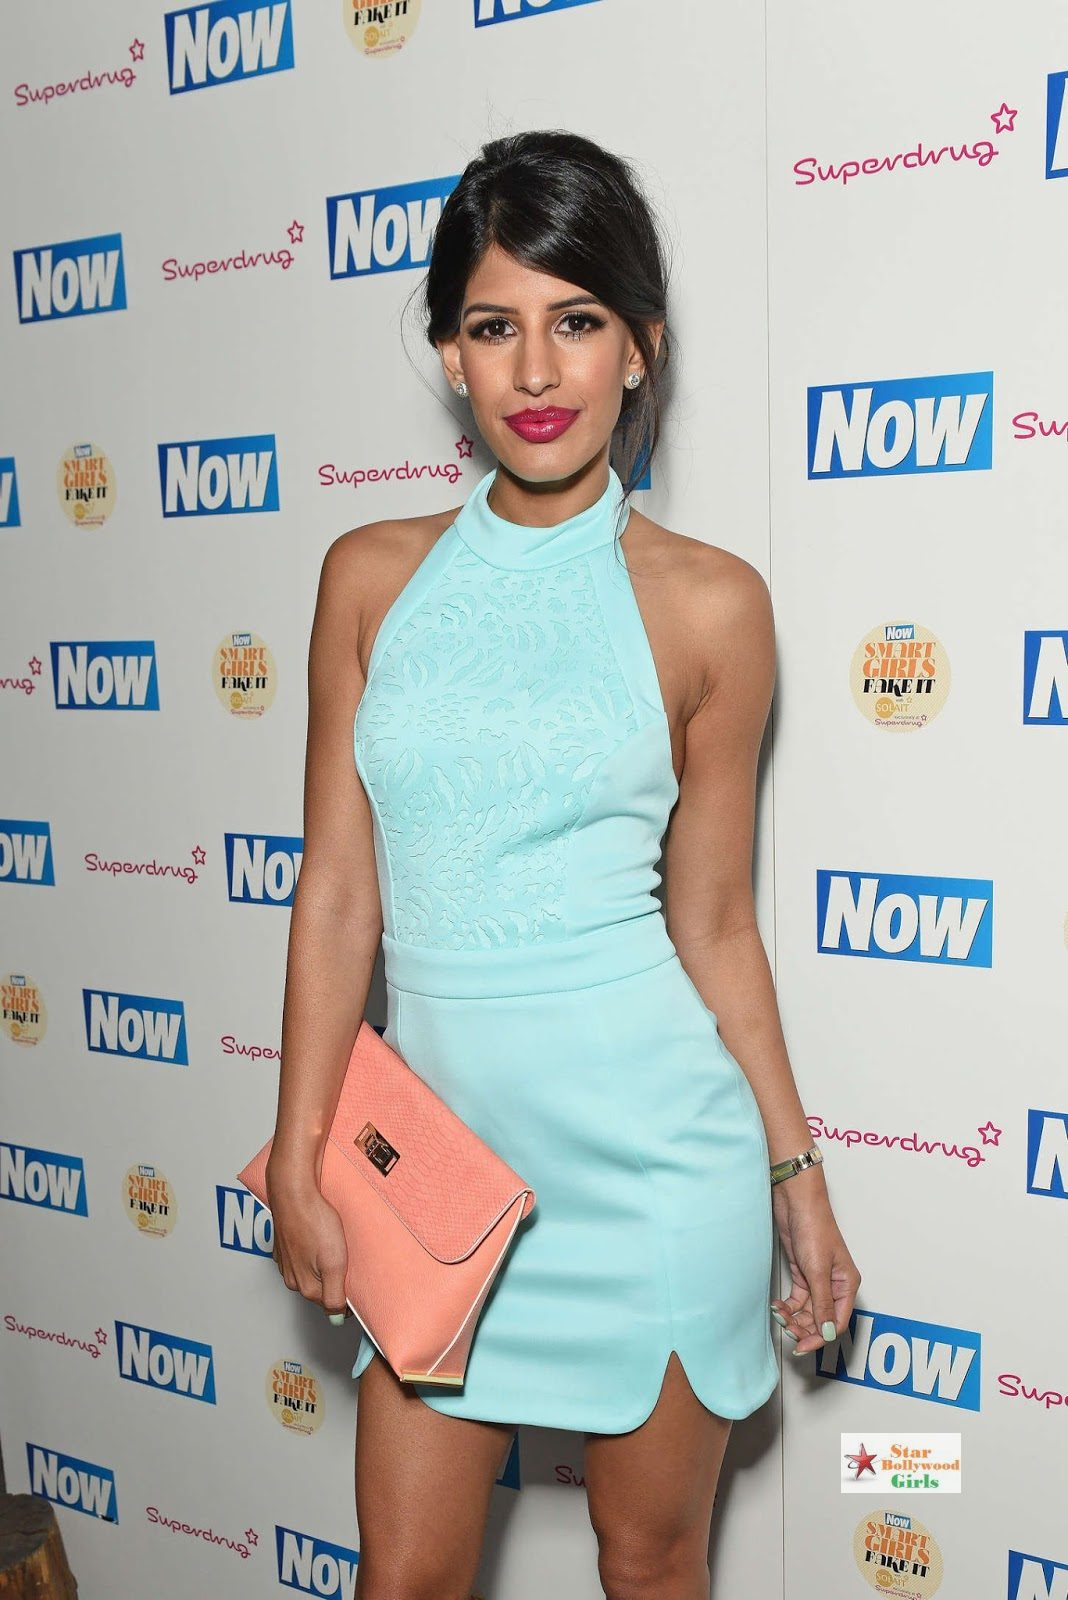 Jasmin-Walia--Now-Smart-Girls-Fake-It-Campaign-Launch--03